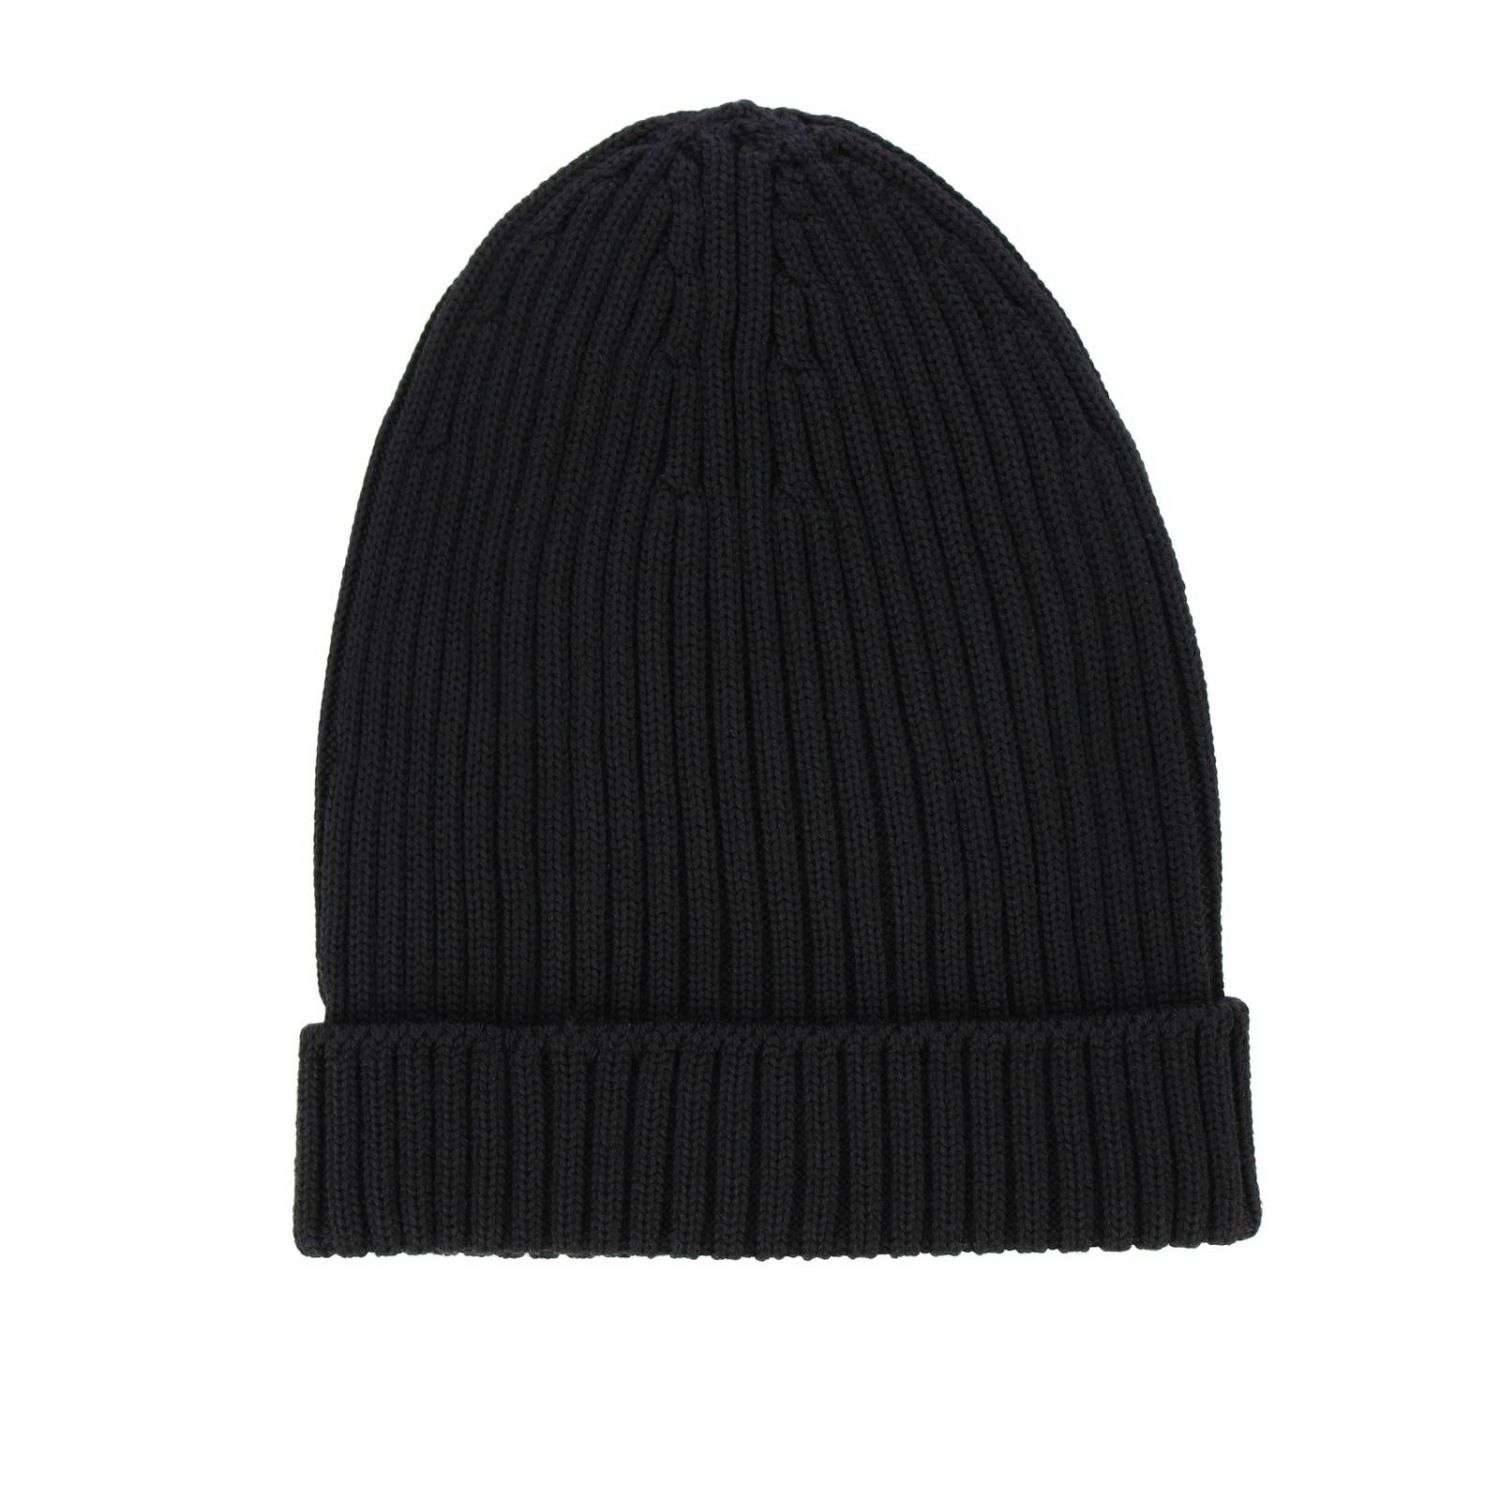 Prada hat in ribbed wool with rubber logo black 2